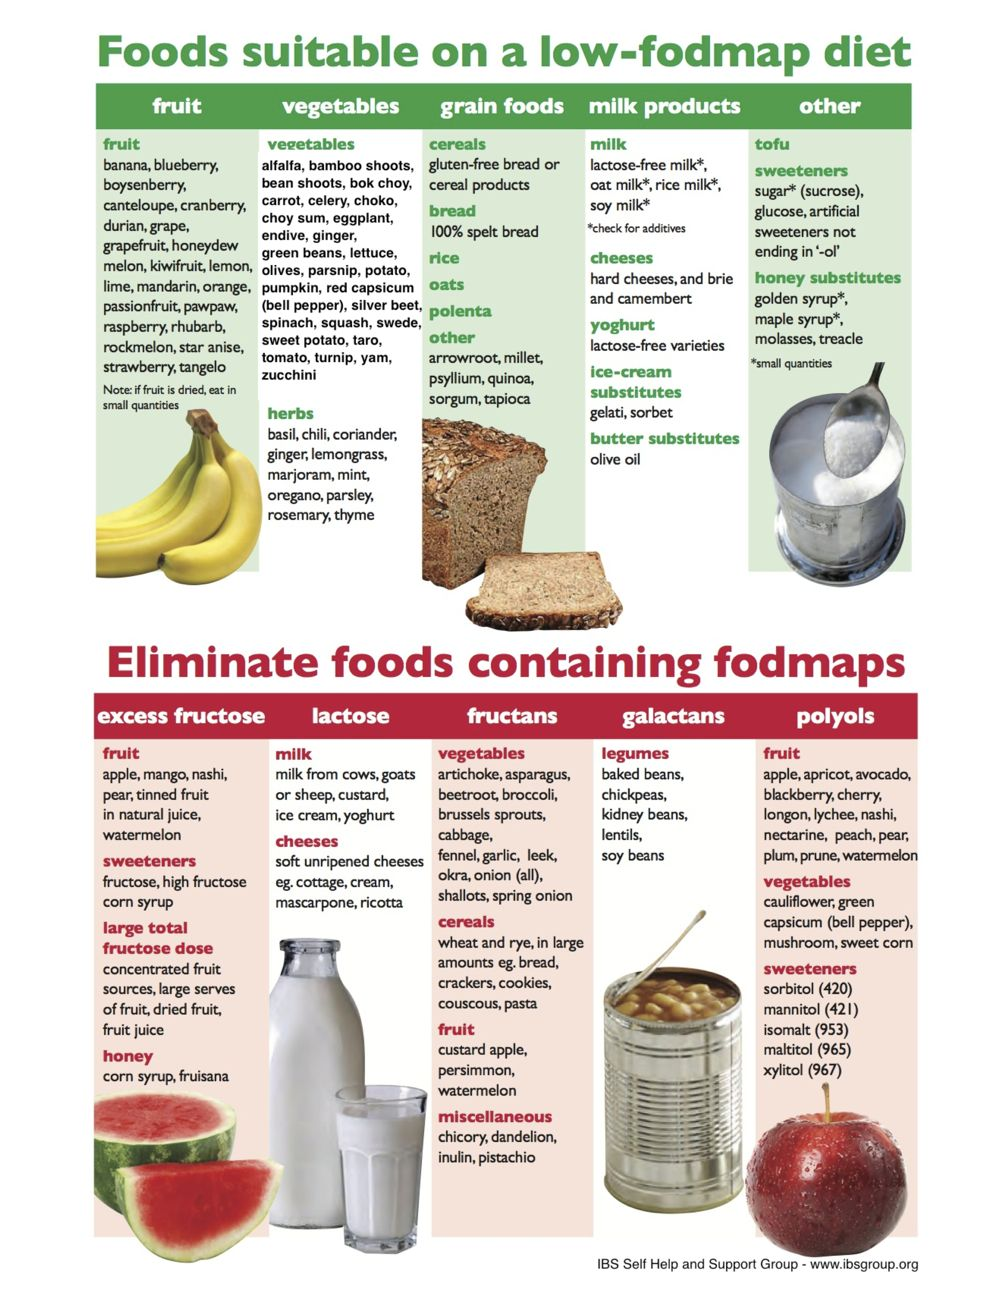 does a fodmap diet helpw ith constipation